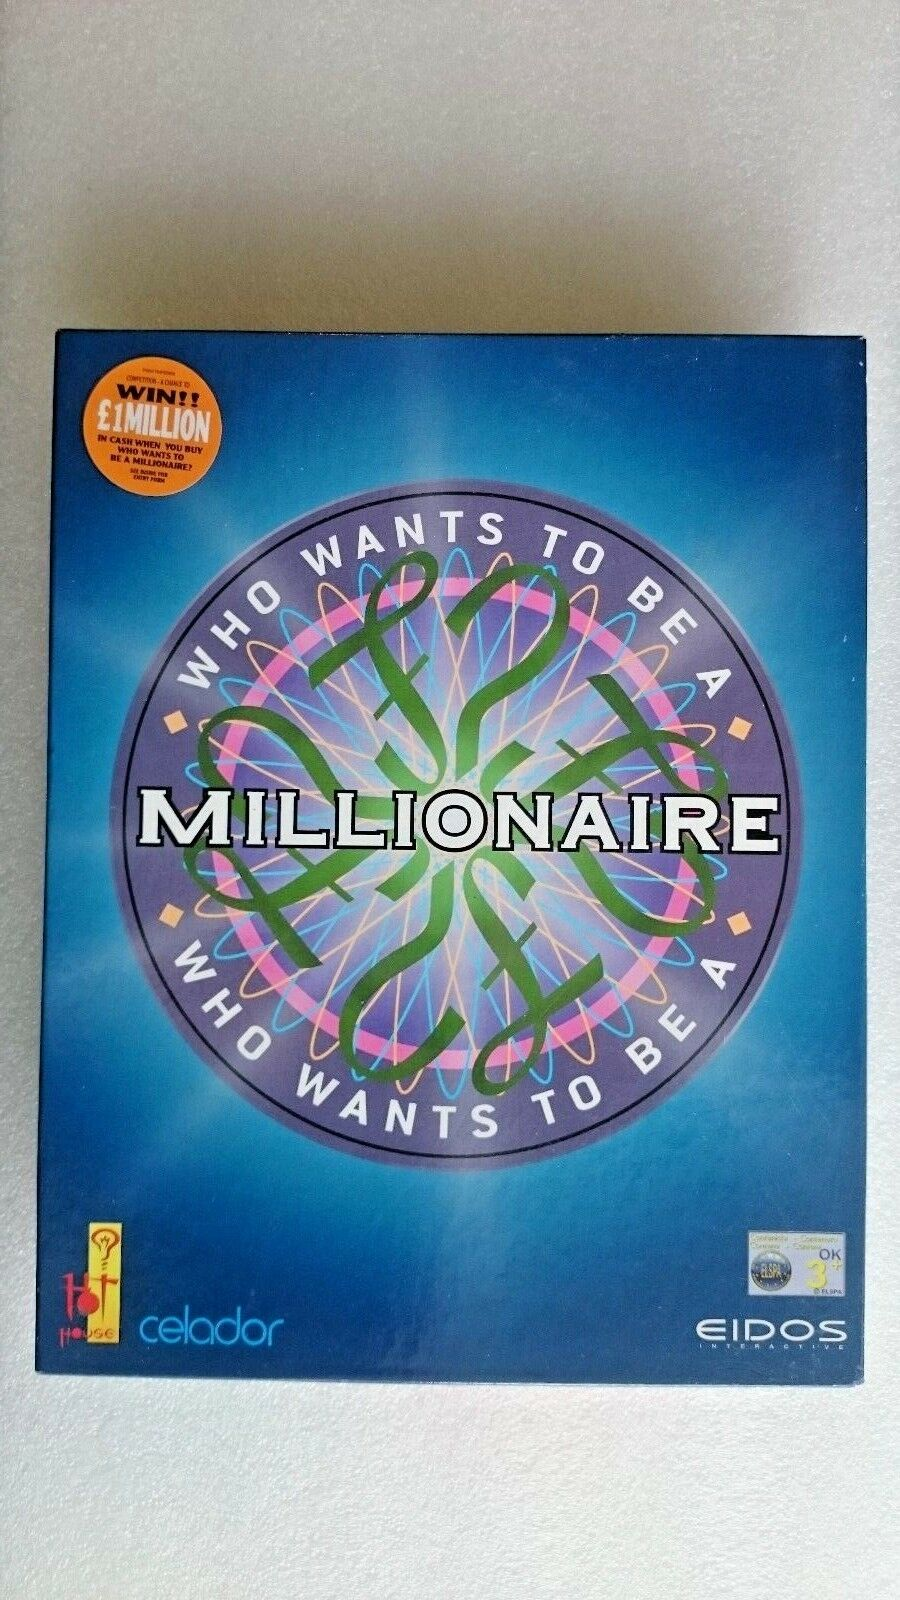 Who Wants to be a Millionaire (PC: Windows, 2000) - Big Box Edition